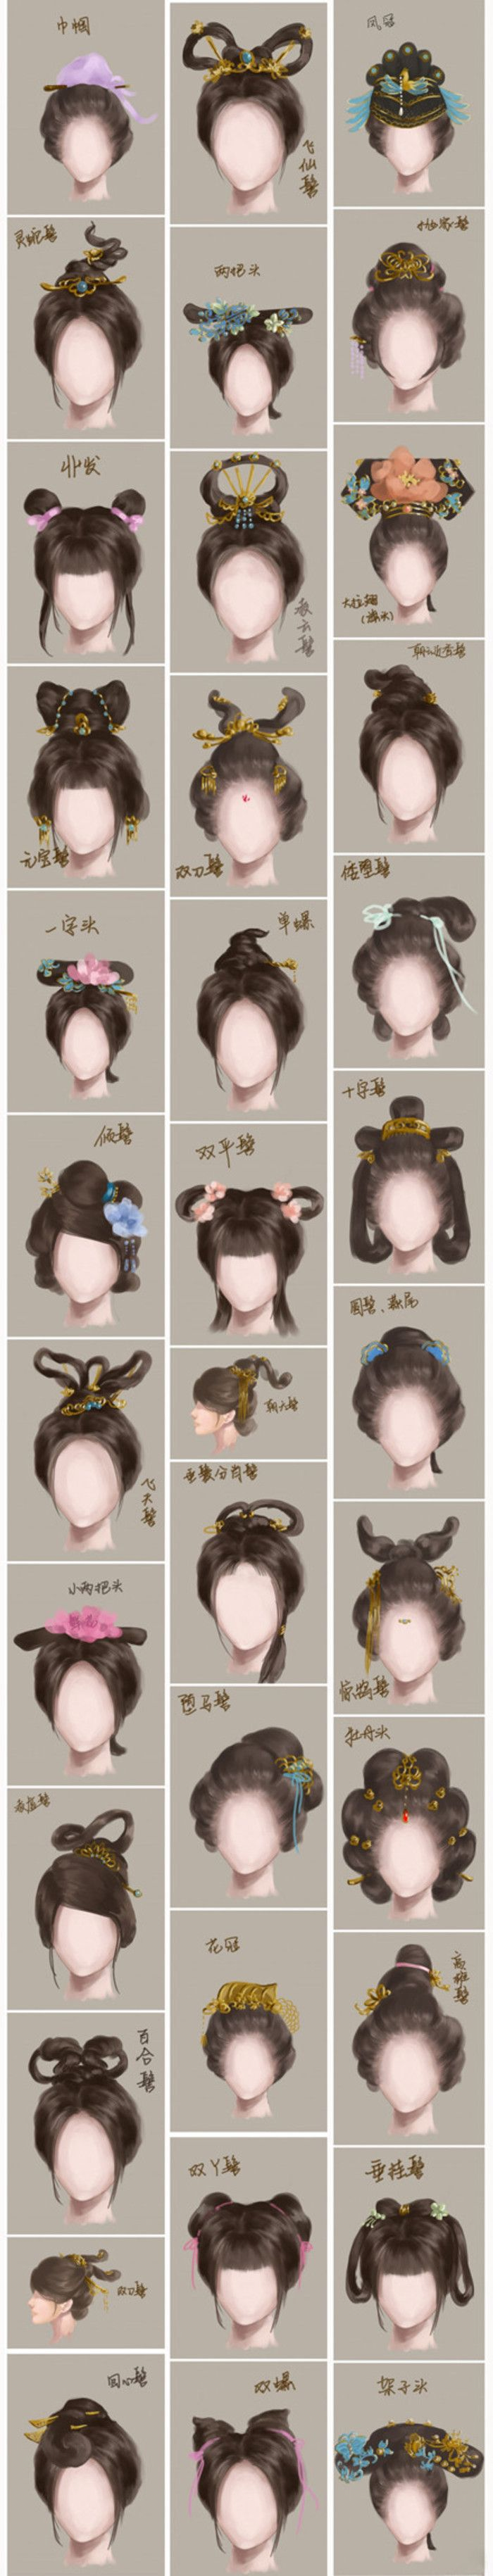 1631 best CrAzY hAiR Dramatic Hair & Wigs Because It s ALL about The